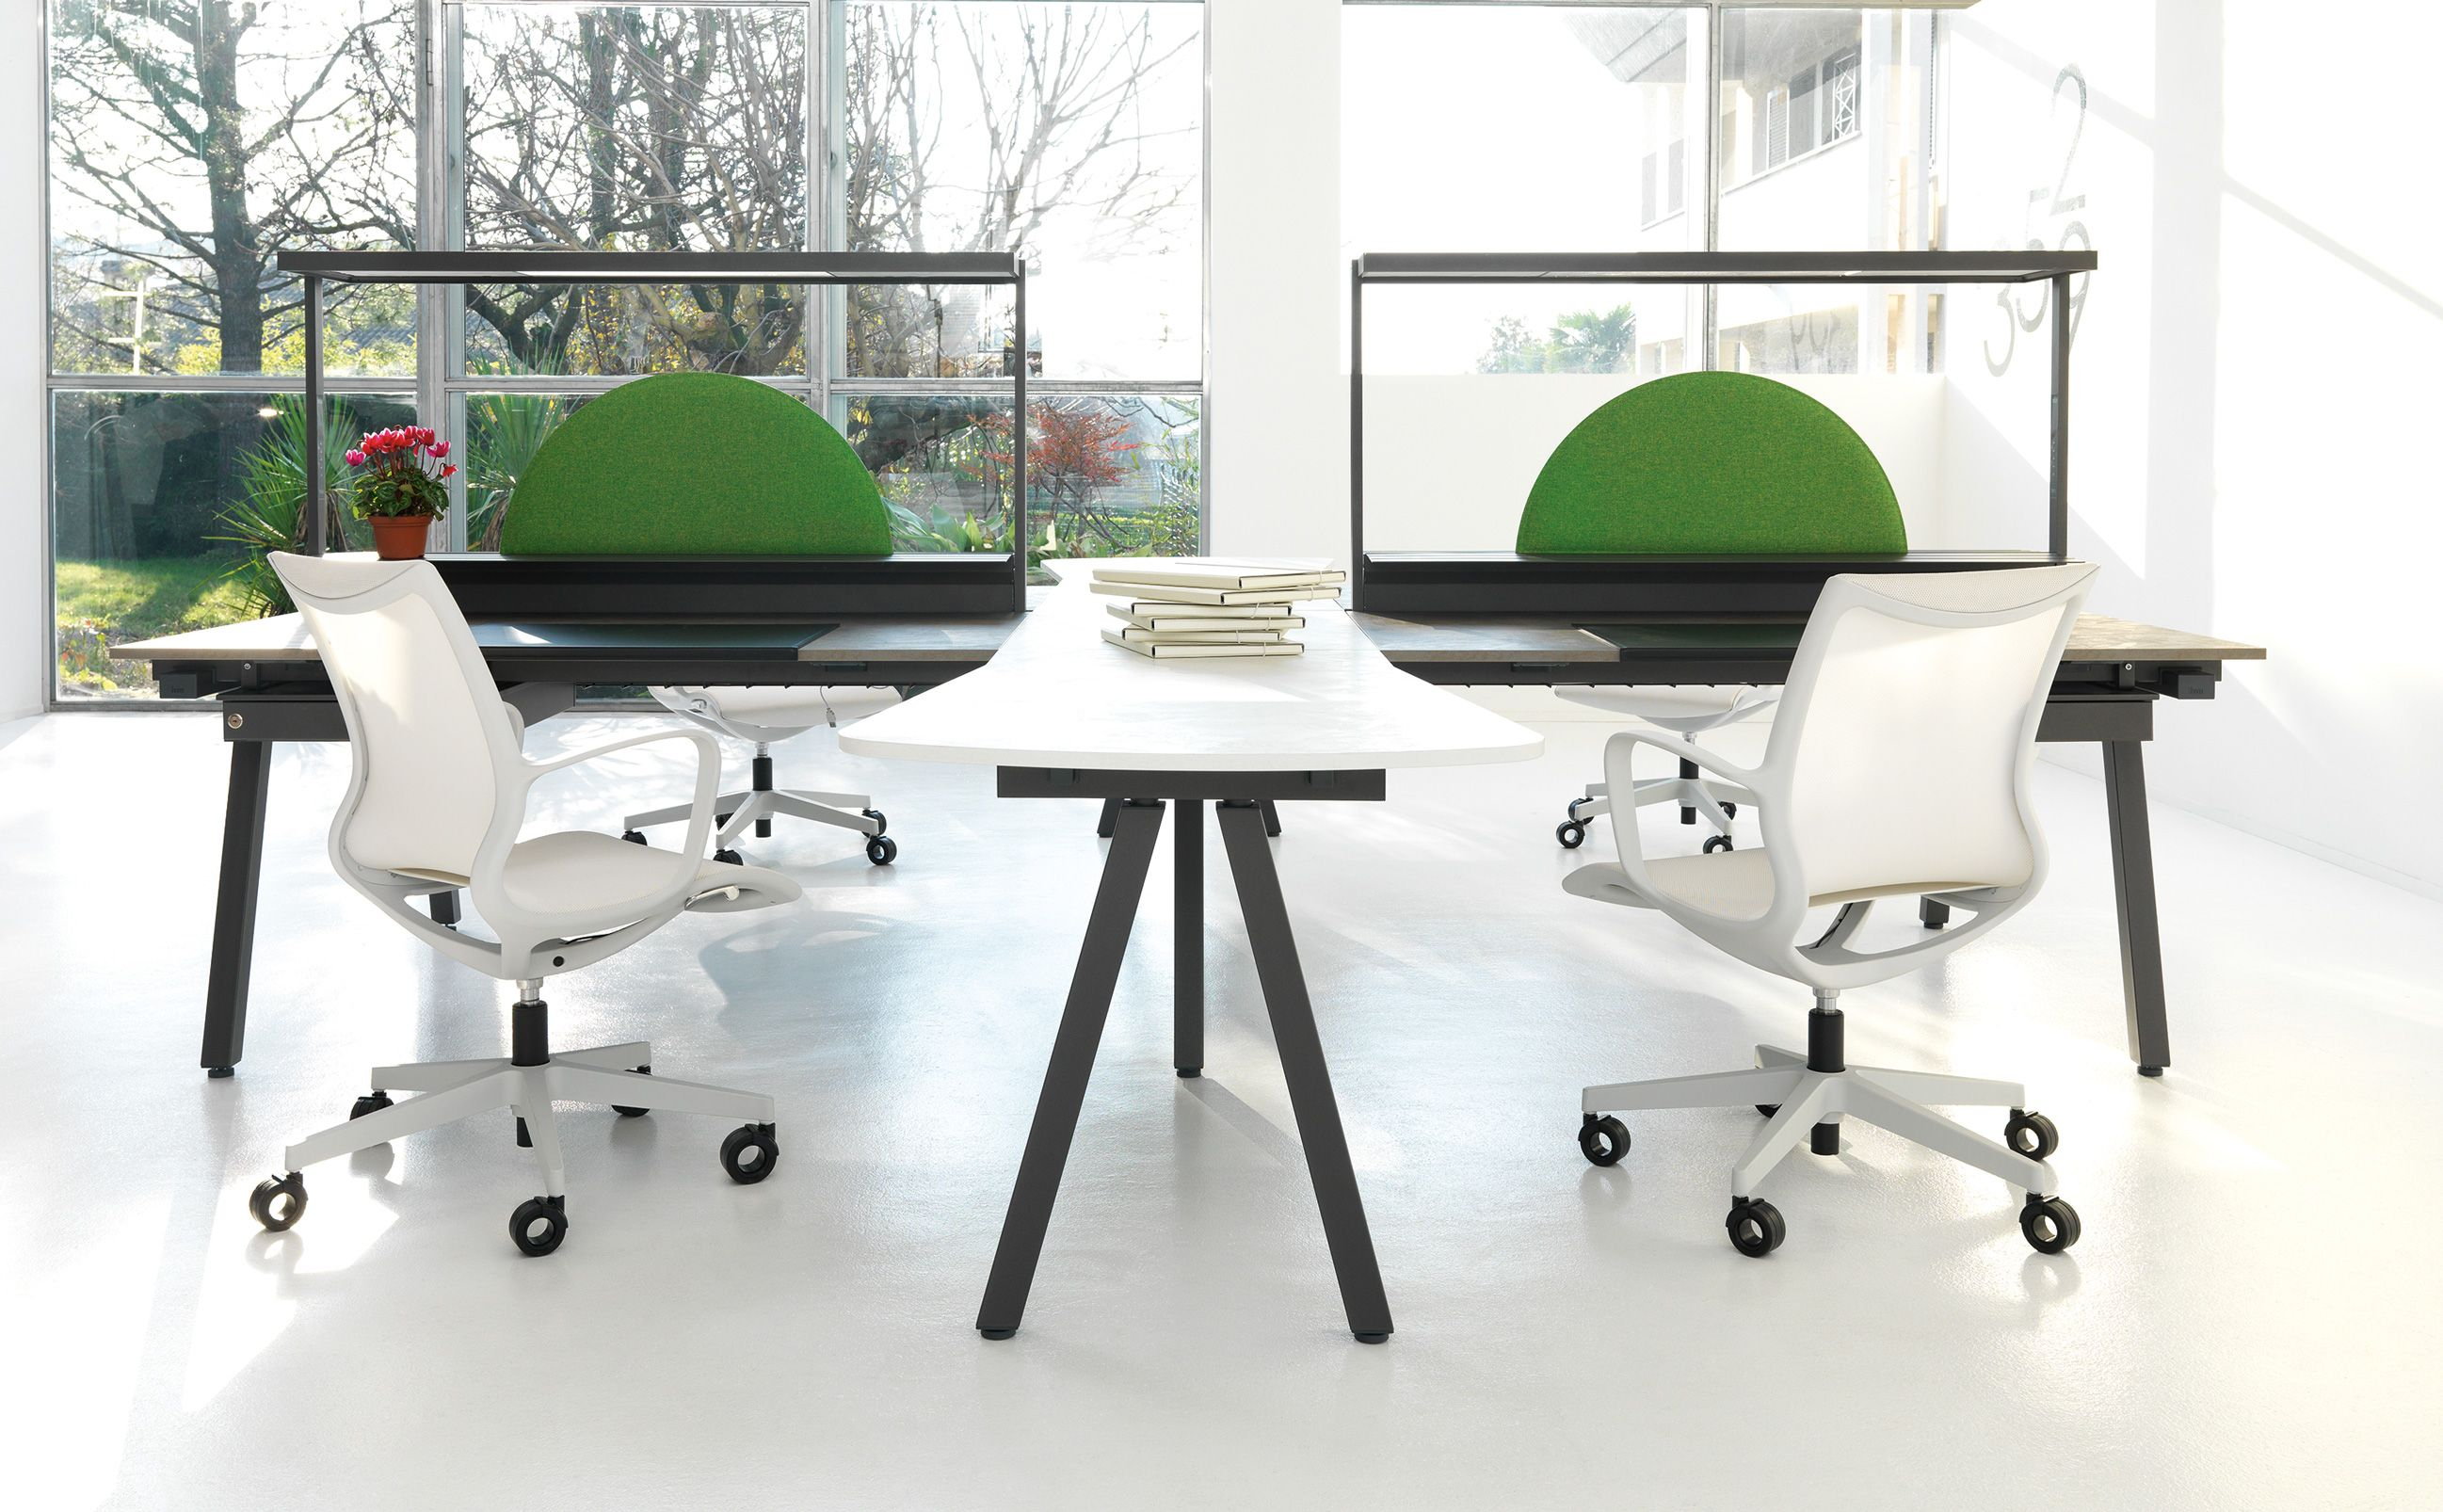 new lines of innovative office furniture launched in milan